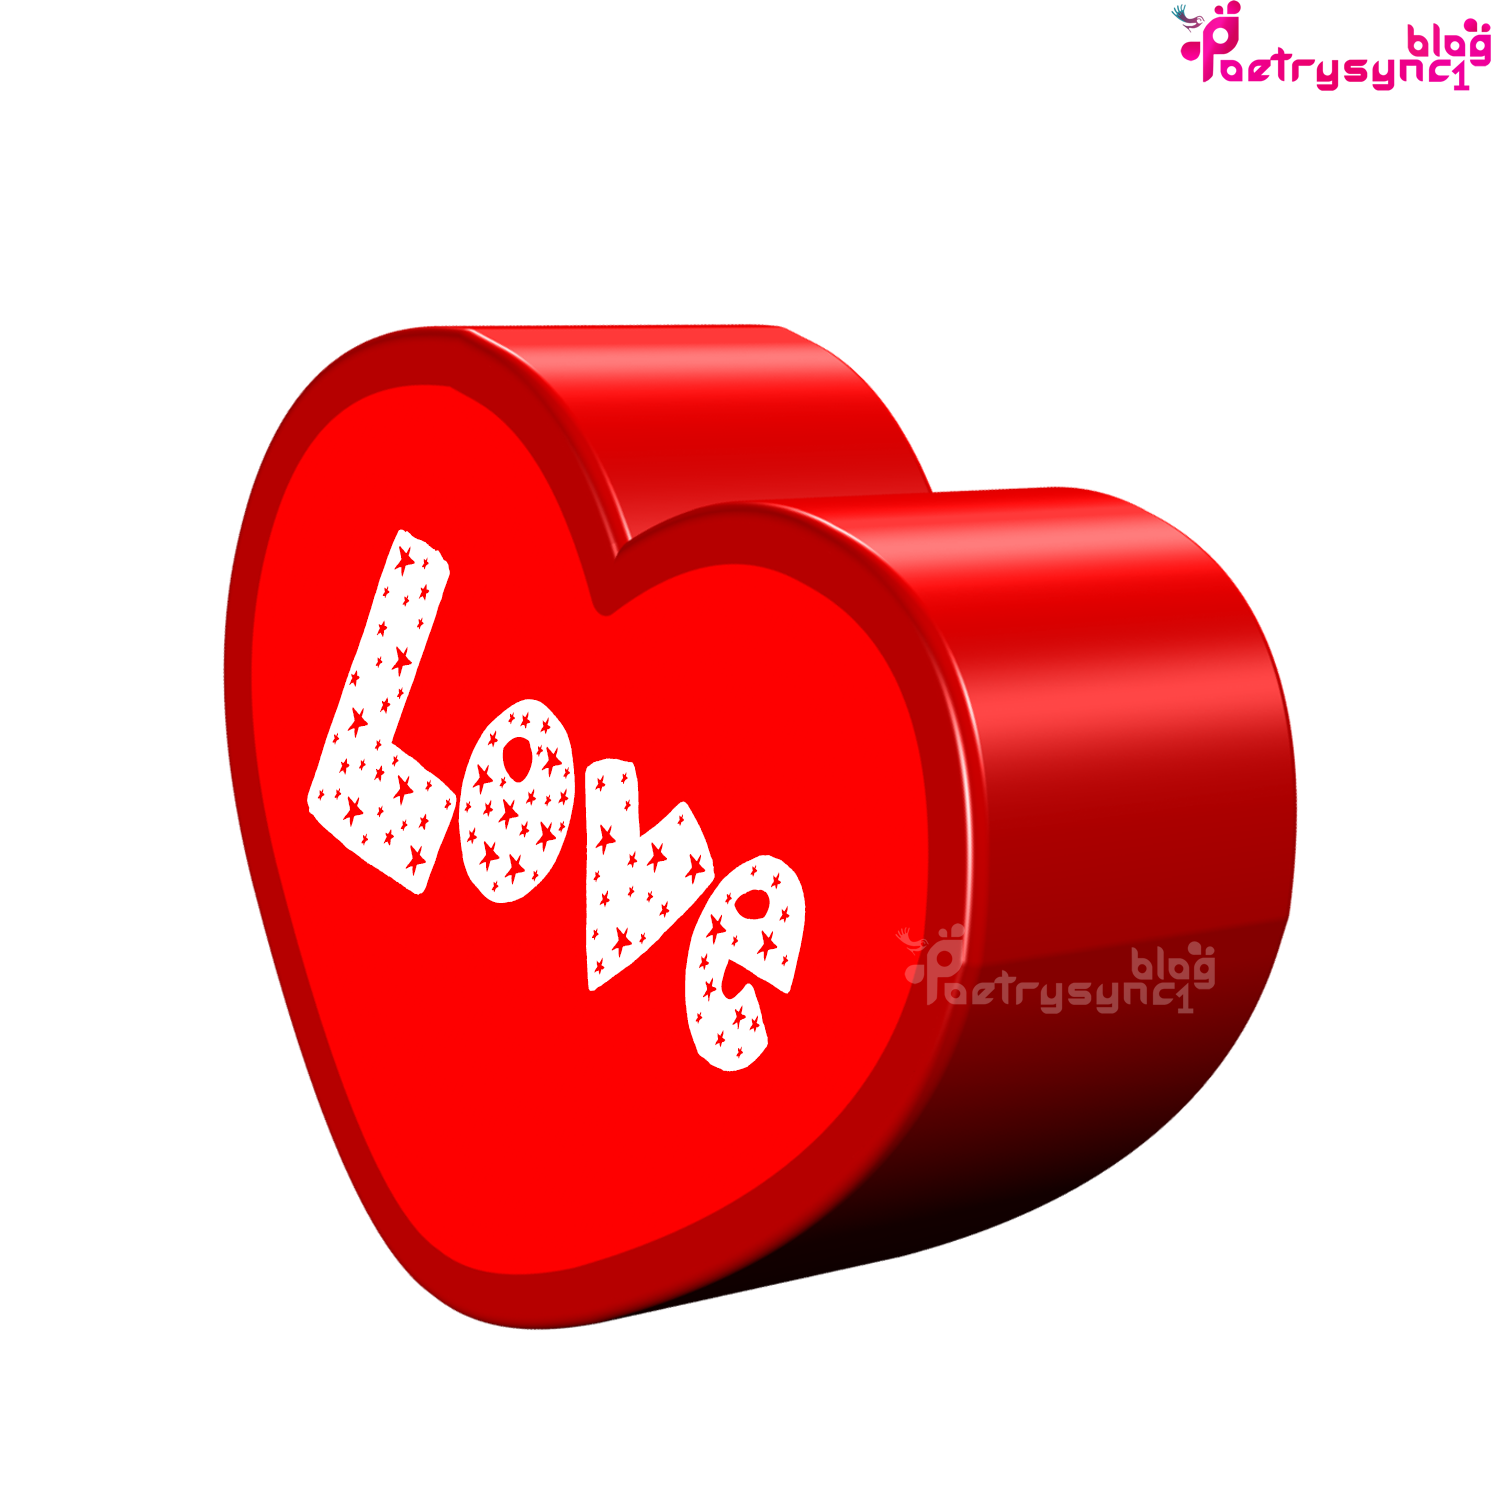 love 3d wallpapers heart images with wishes messages - romantic urdu